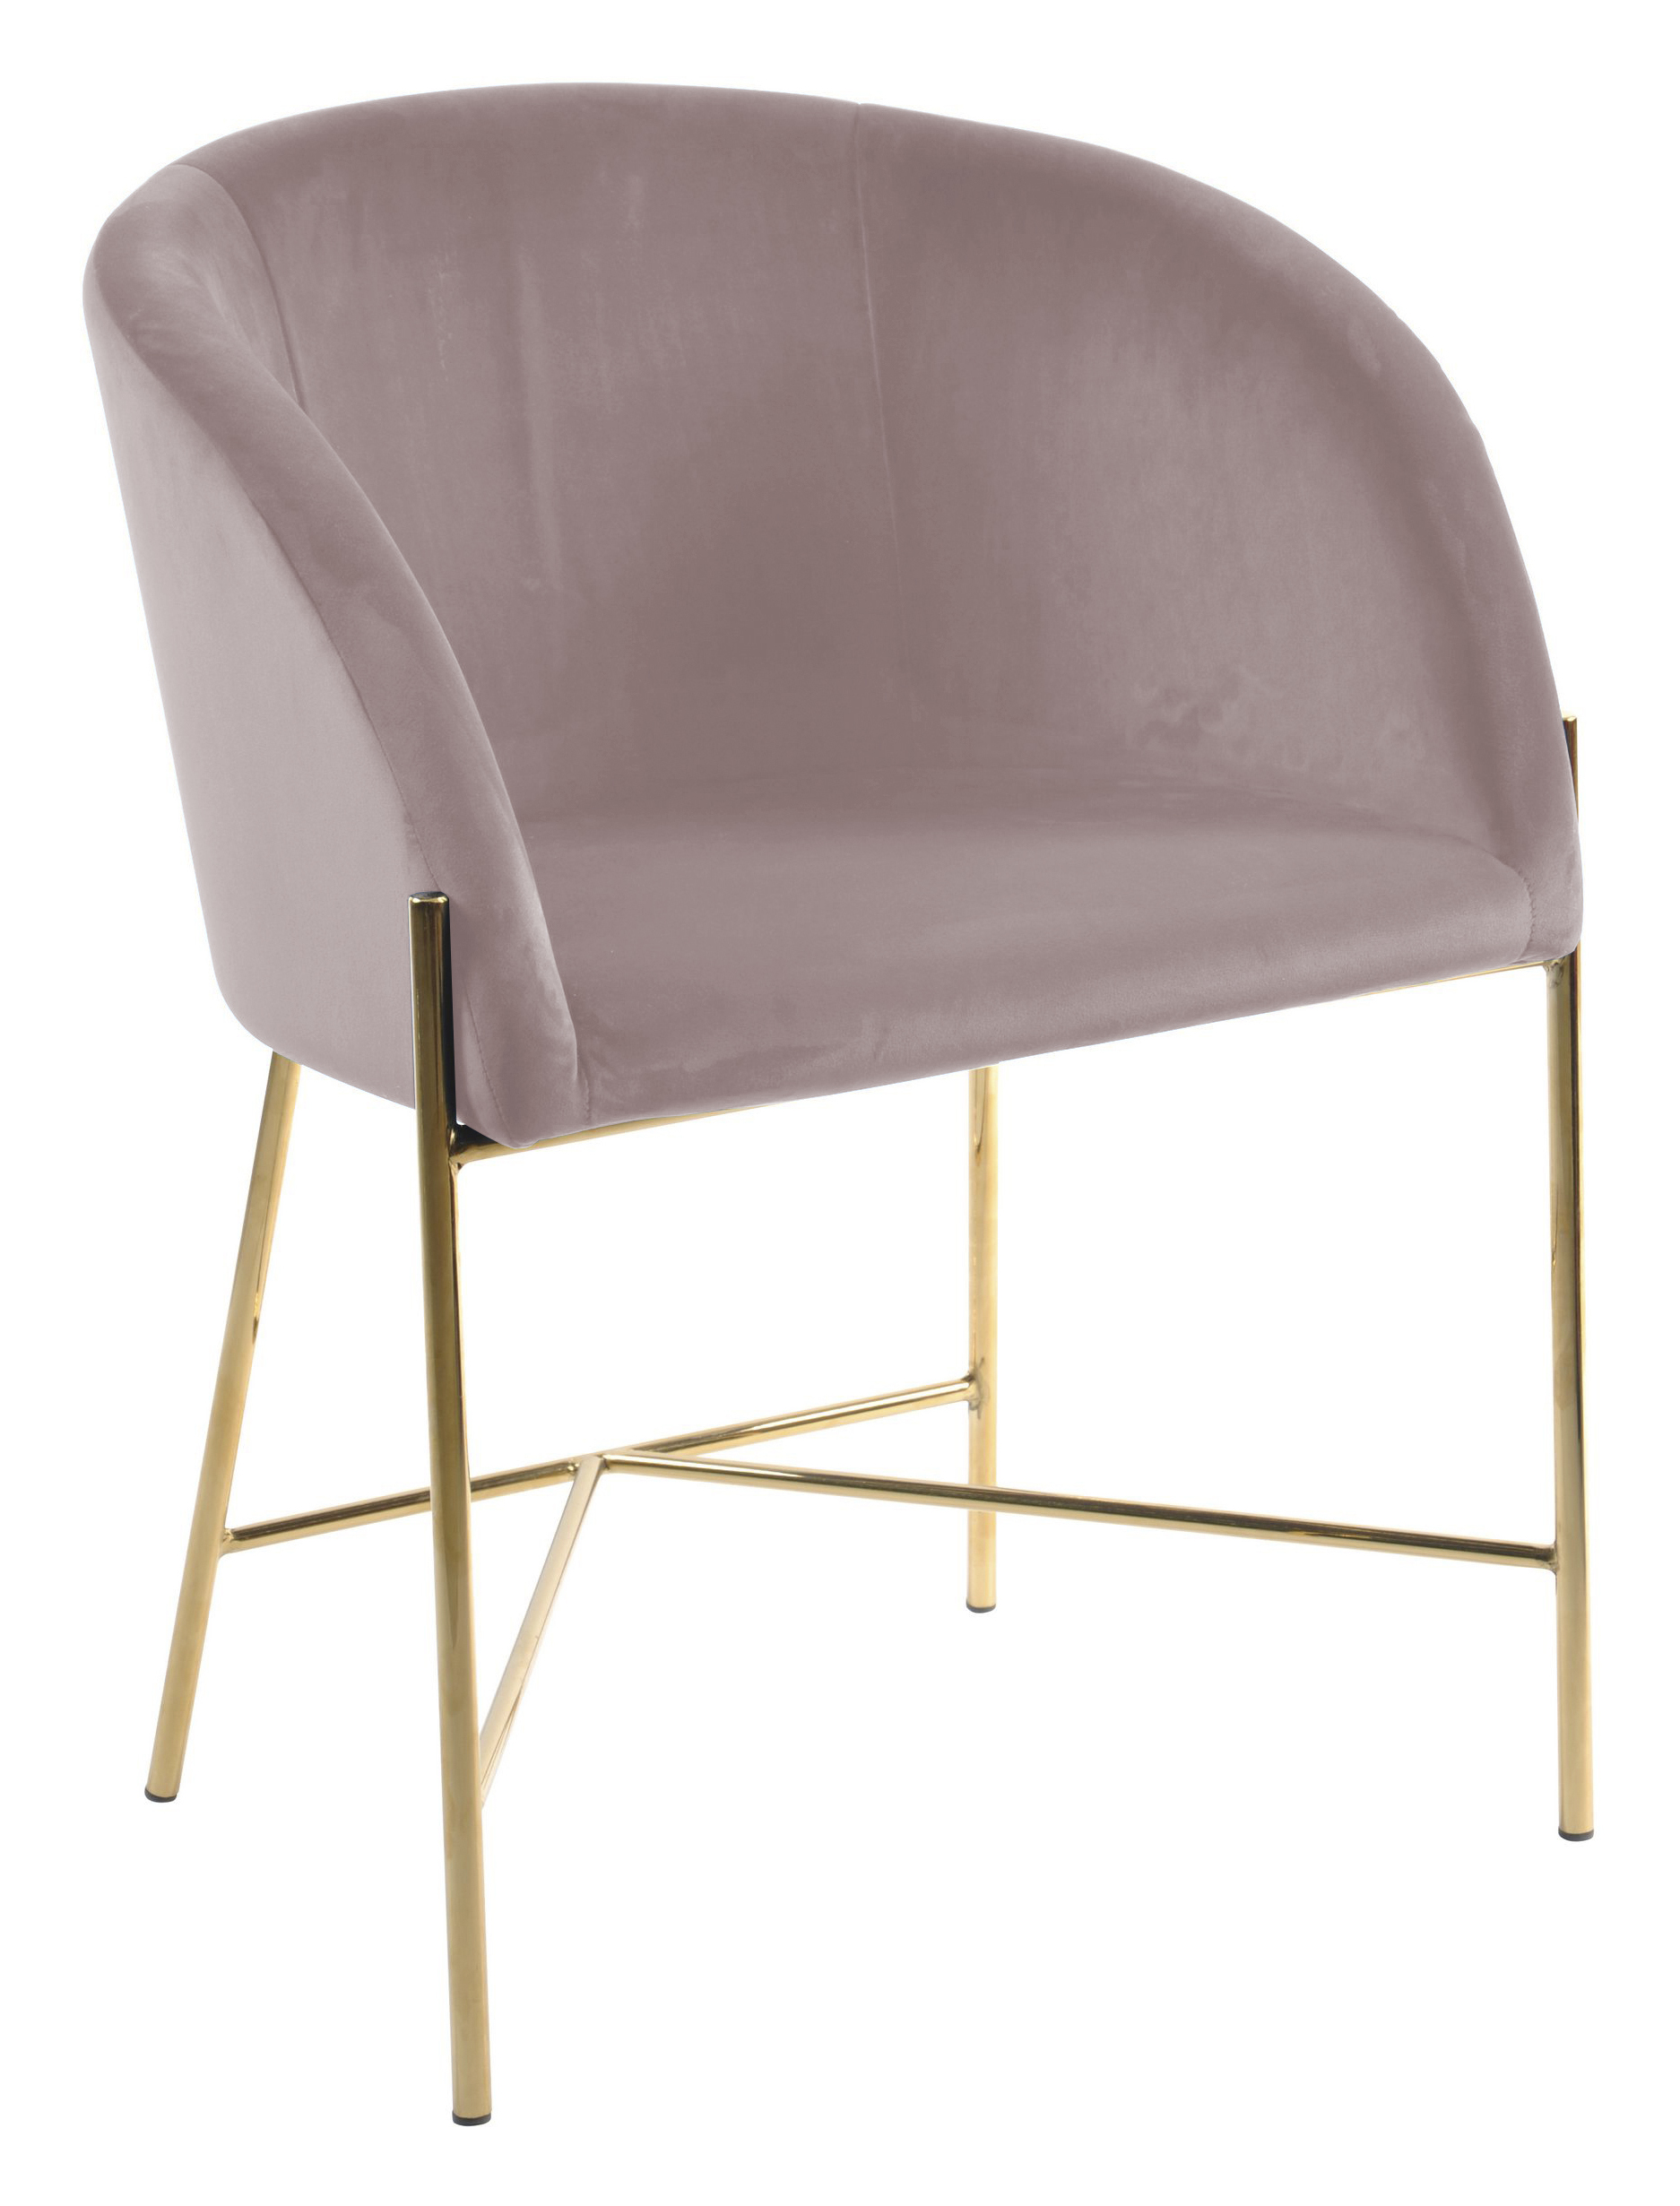 Interstil Eetkamerstoel 'Nelson Gold' Velvet, kleur Dusty Rose